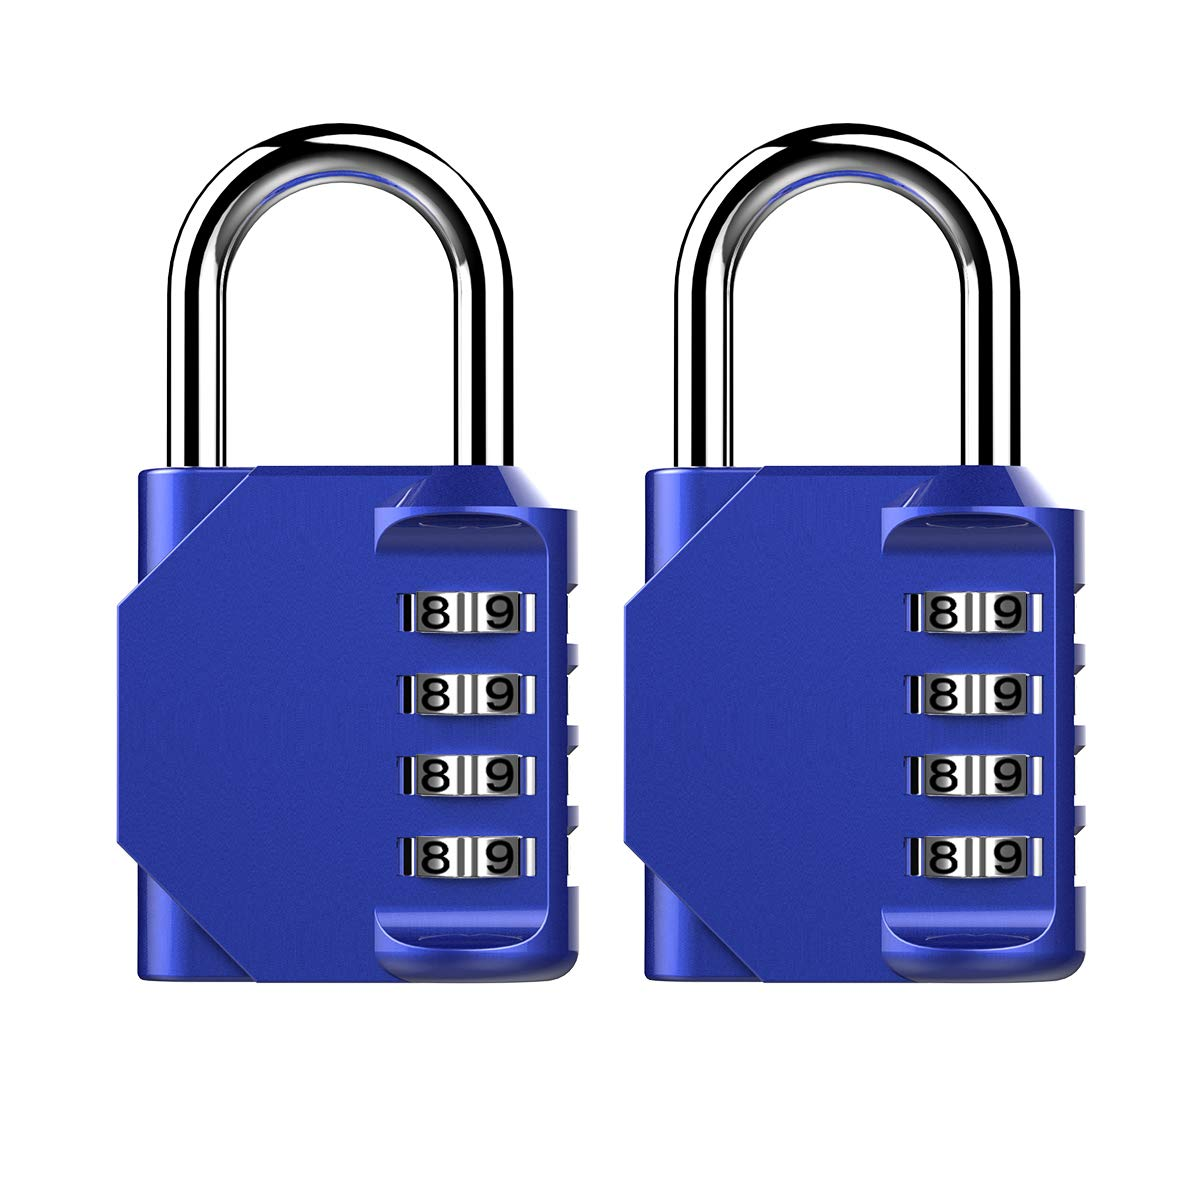 Puroma 2 Pack Combination Lock 4 Digit Padlock for School Gym Locker,Sports Locker,Fence,Toolbox,Case,Hasp Storage (Blue)